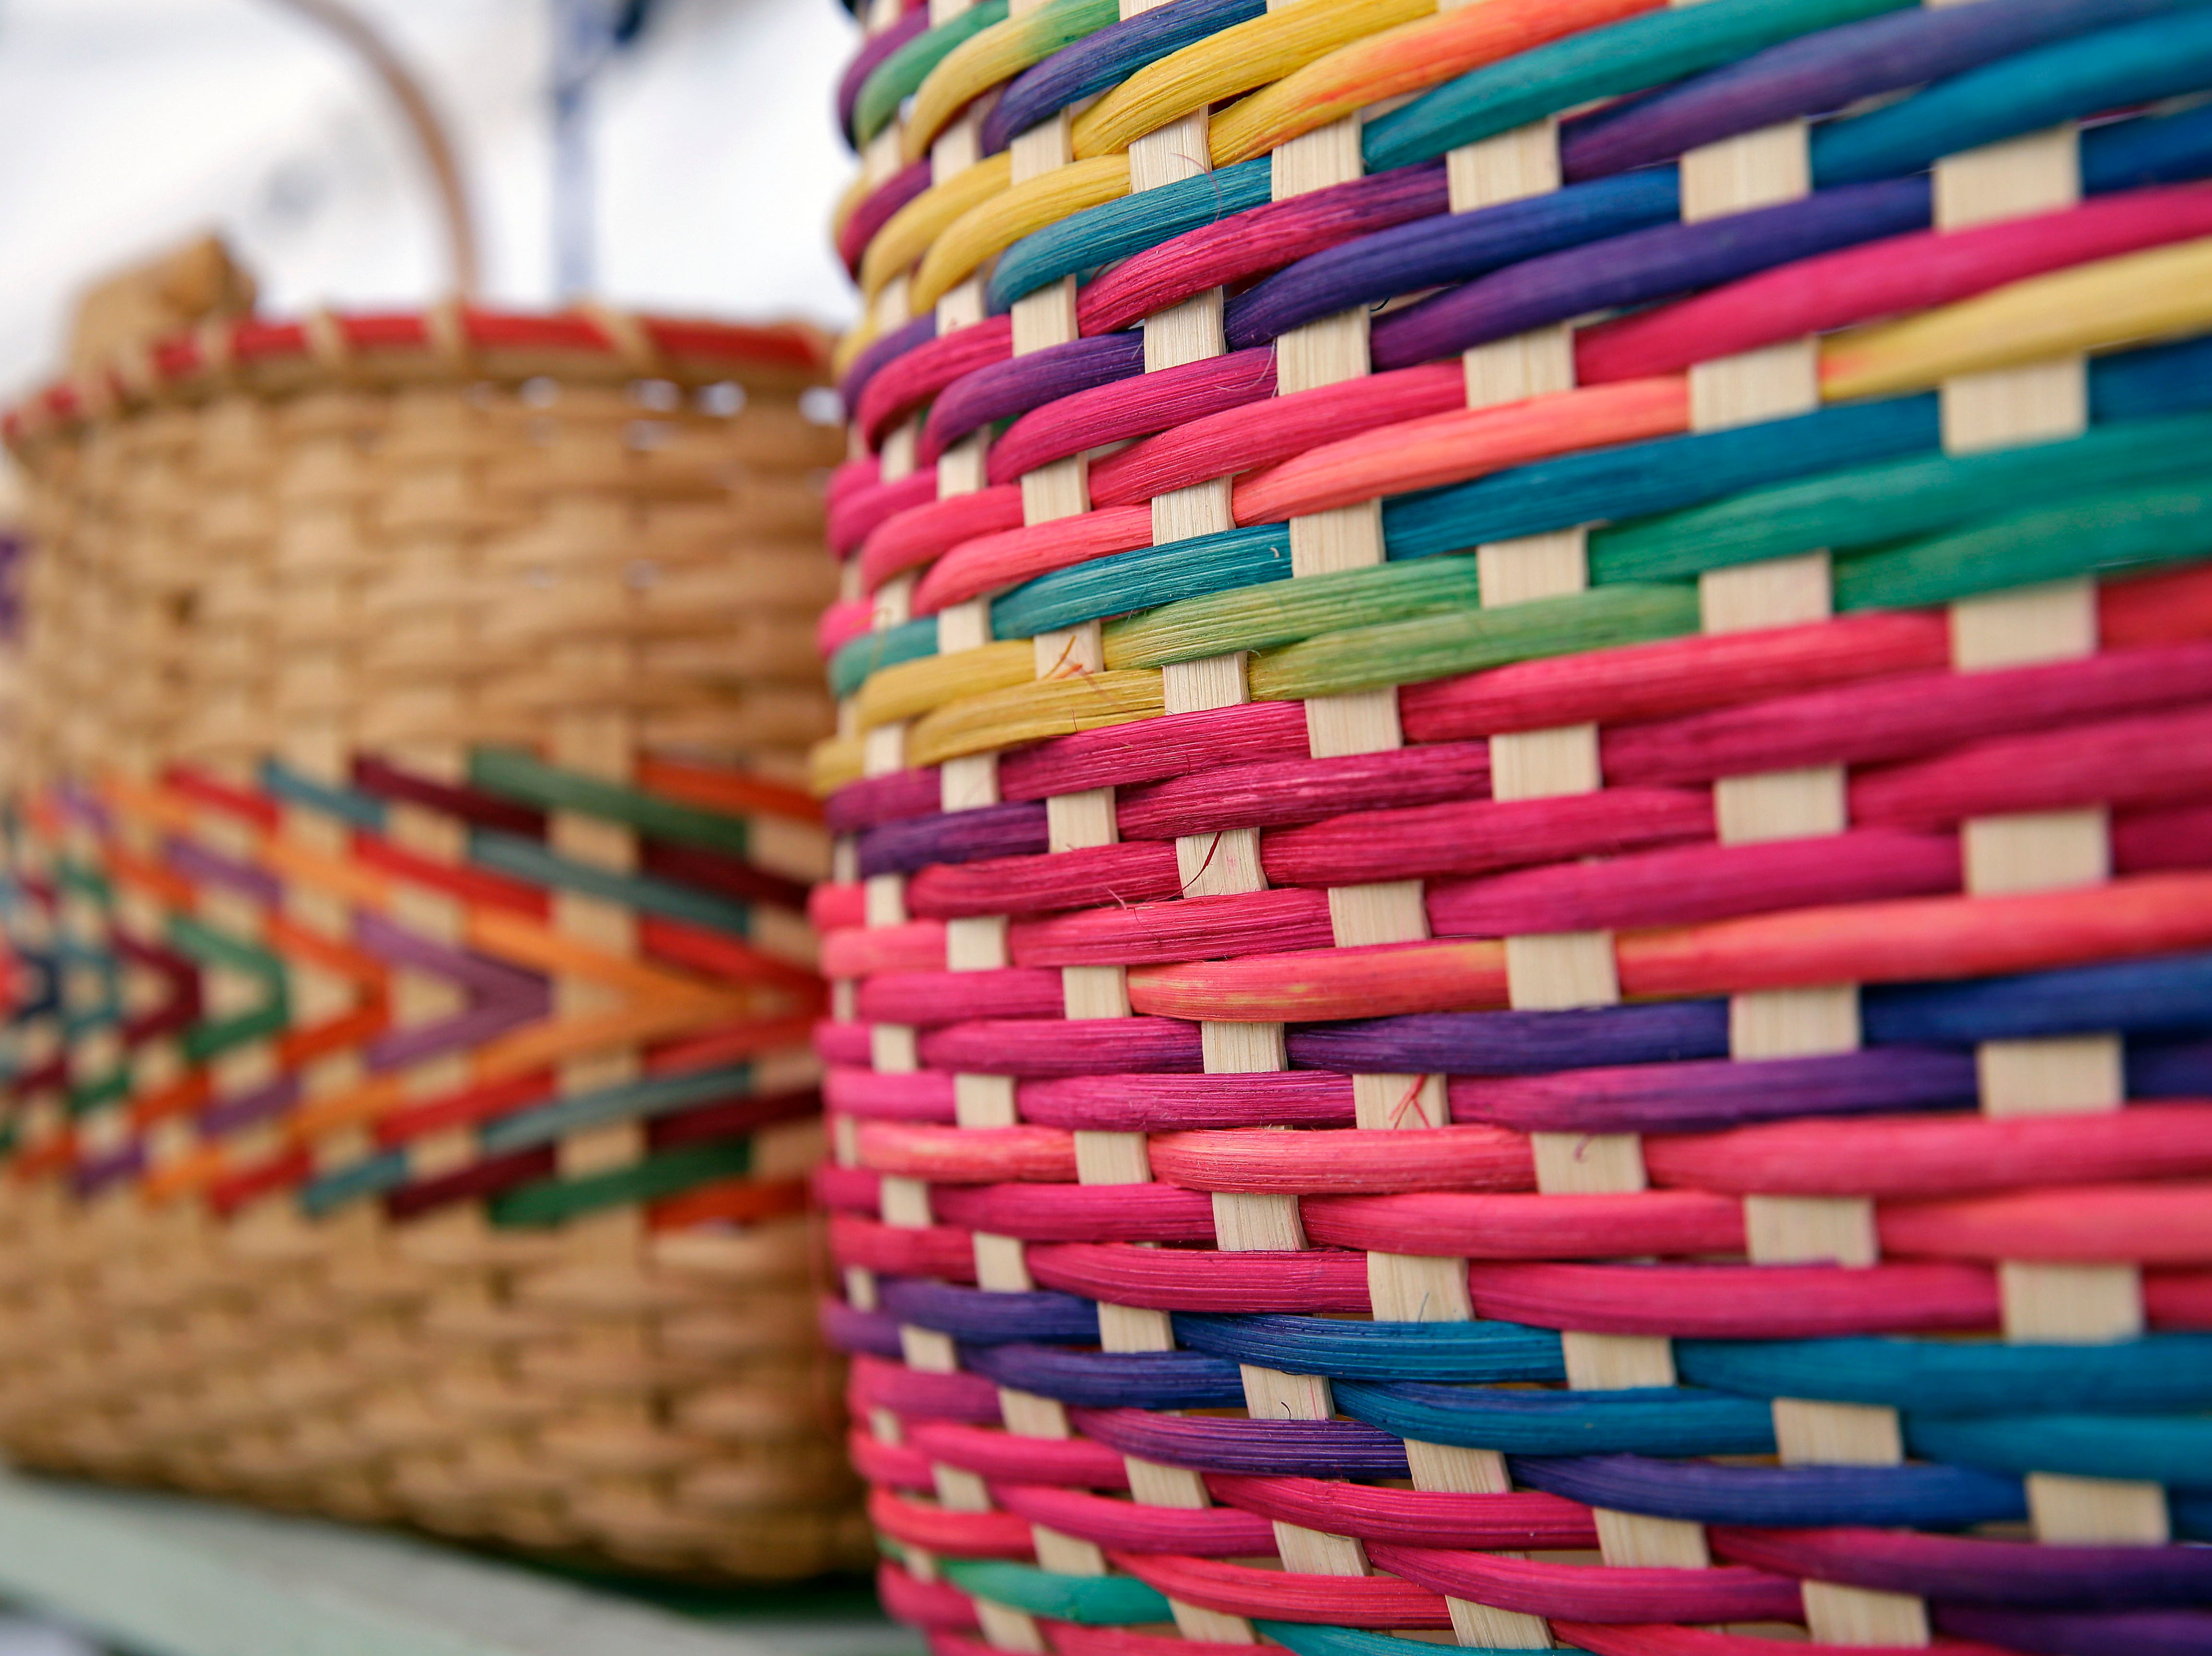 Baskets on display at the Basket Artistry booth as the 58th annual Art at the Park takes place Sunday, July 29, 2018, at City Park in Appleton, Wis.Ron Page/USA TODAY NETWORK-Wisconsin